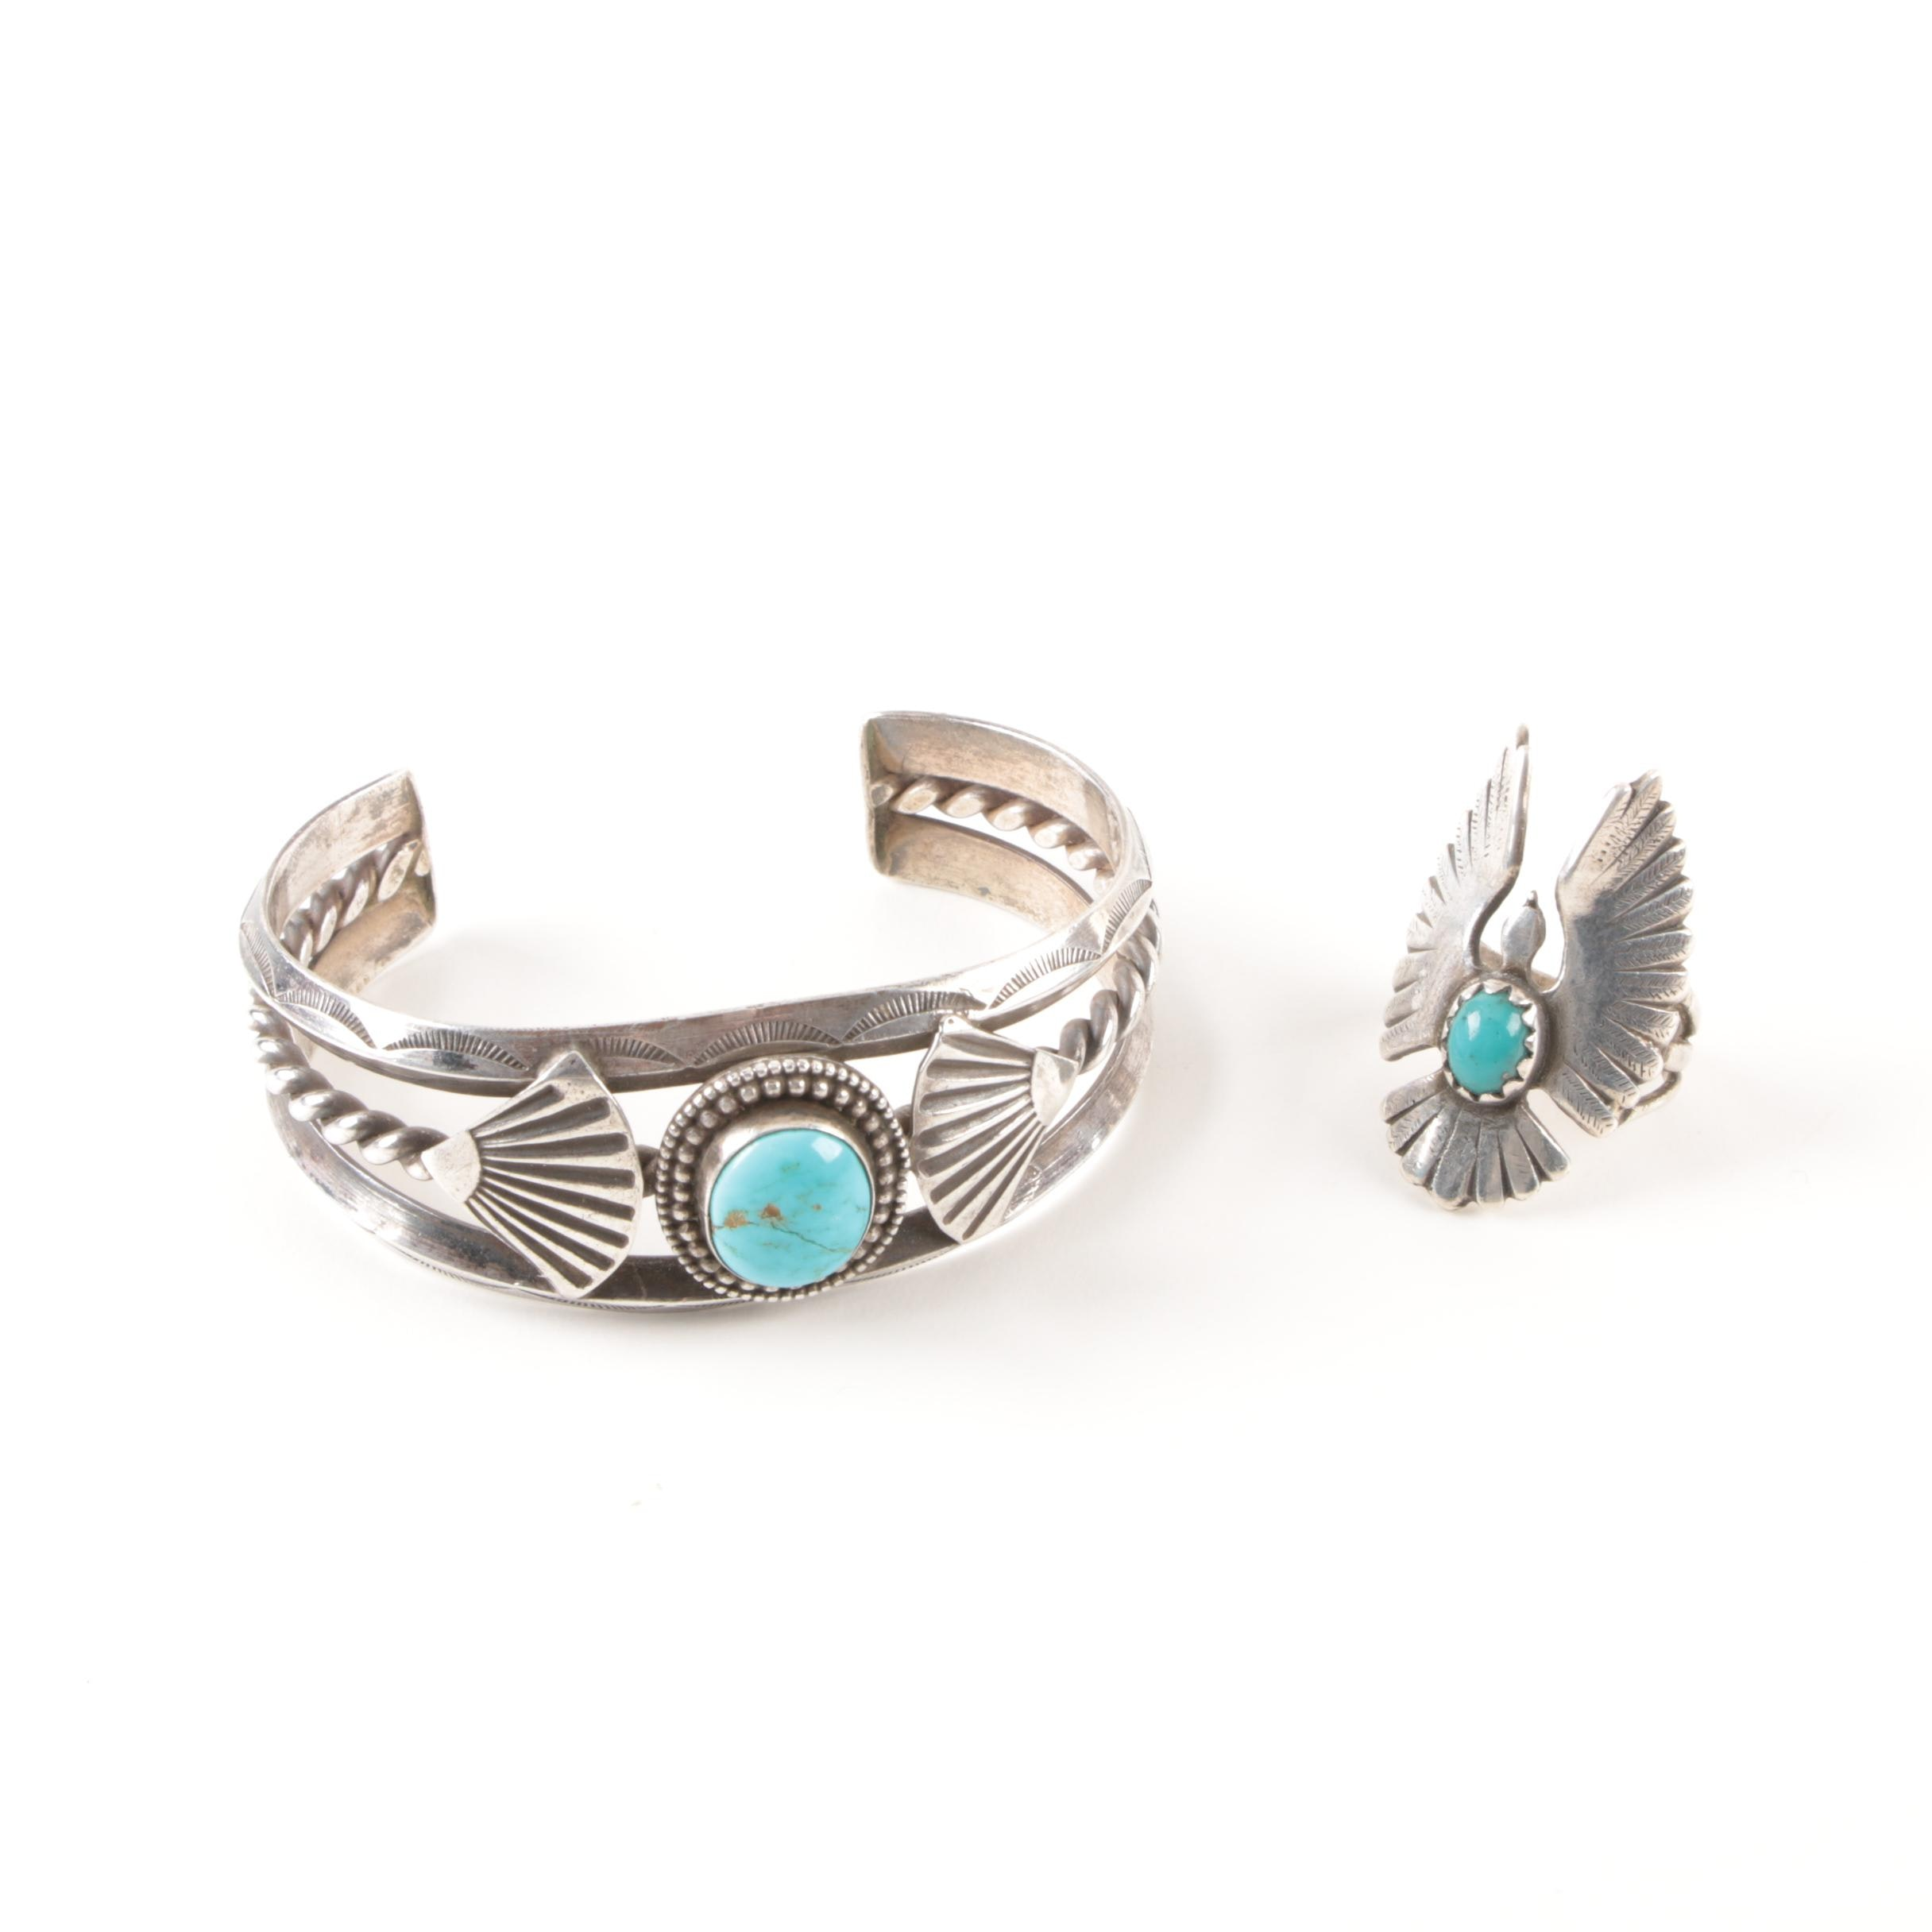 Southwest-Style Sterling Silver Cuff Bracelet and Ring with Turquoise